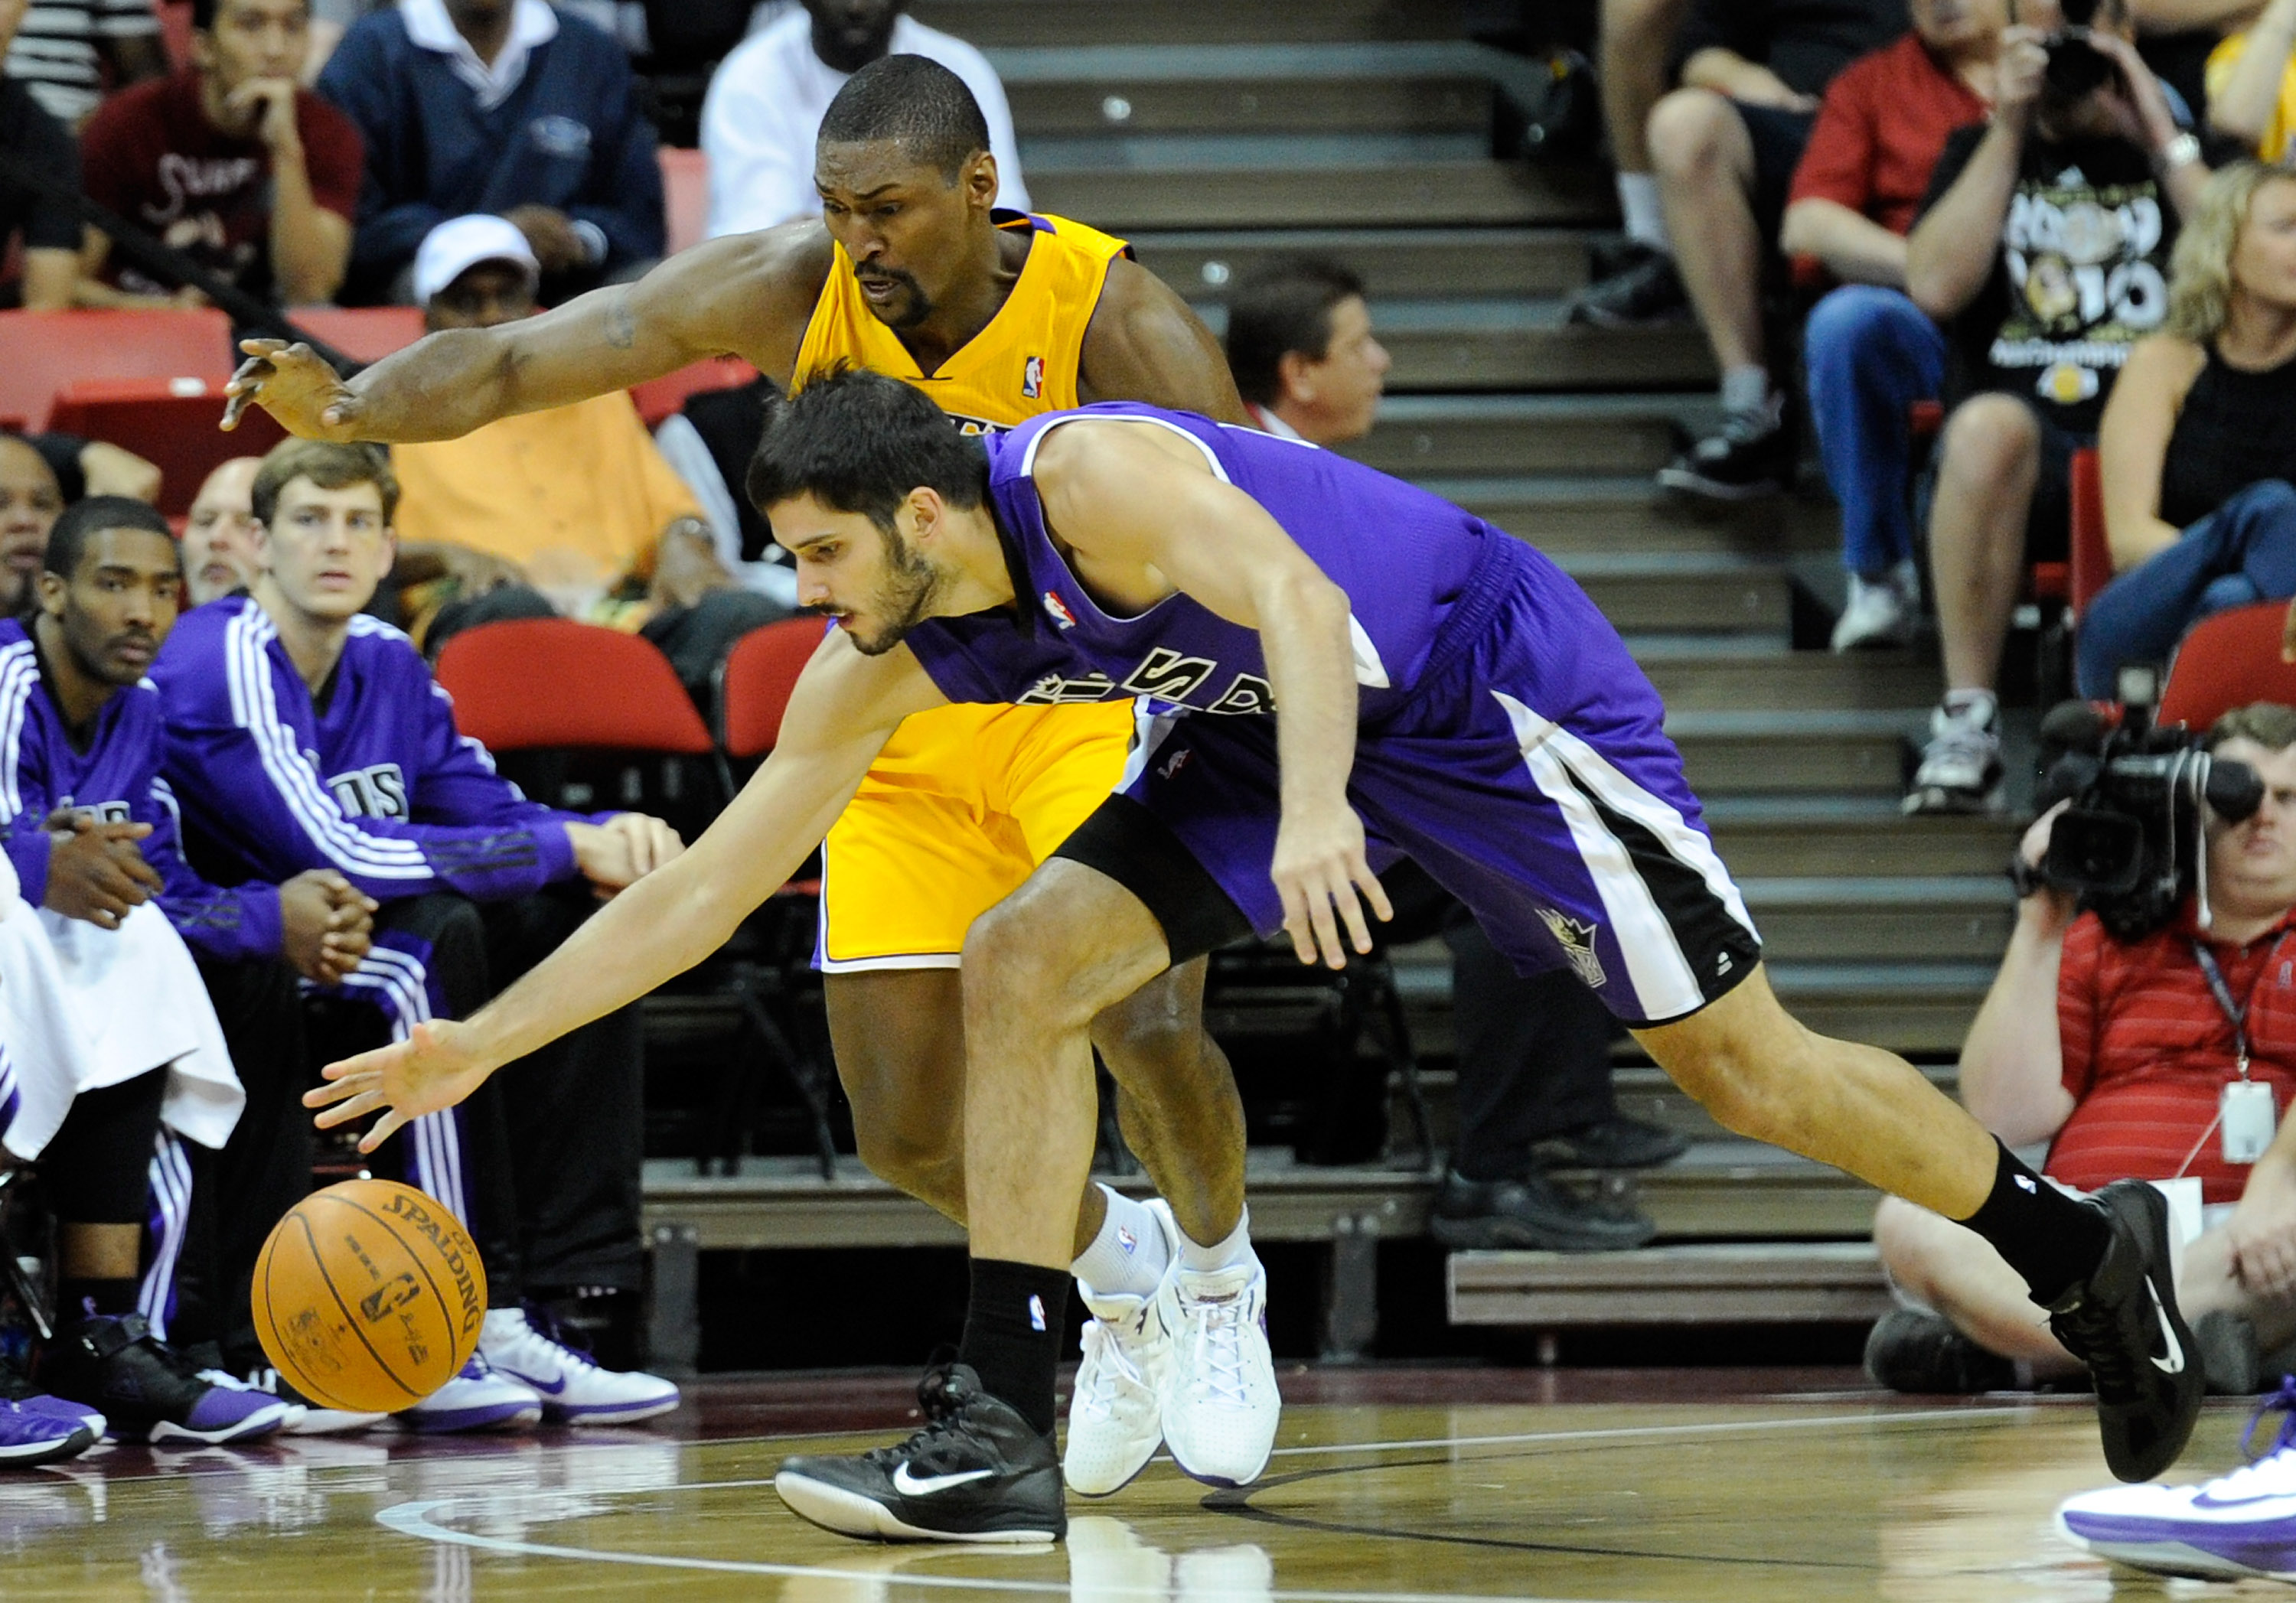 LAS VEGAS - OCTOBER 13:  Ron Artest #15 of the Los Angeles Lakers tries to steal the ball from Omri Casspi #18 of the Sacramento Kings during their preseason game at the Thomas & Mack Center October 13, 2010 in Las Vegas, Nevada. The Lakers won 98-95. NOT